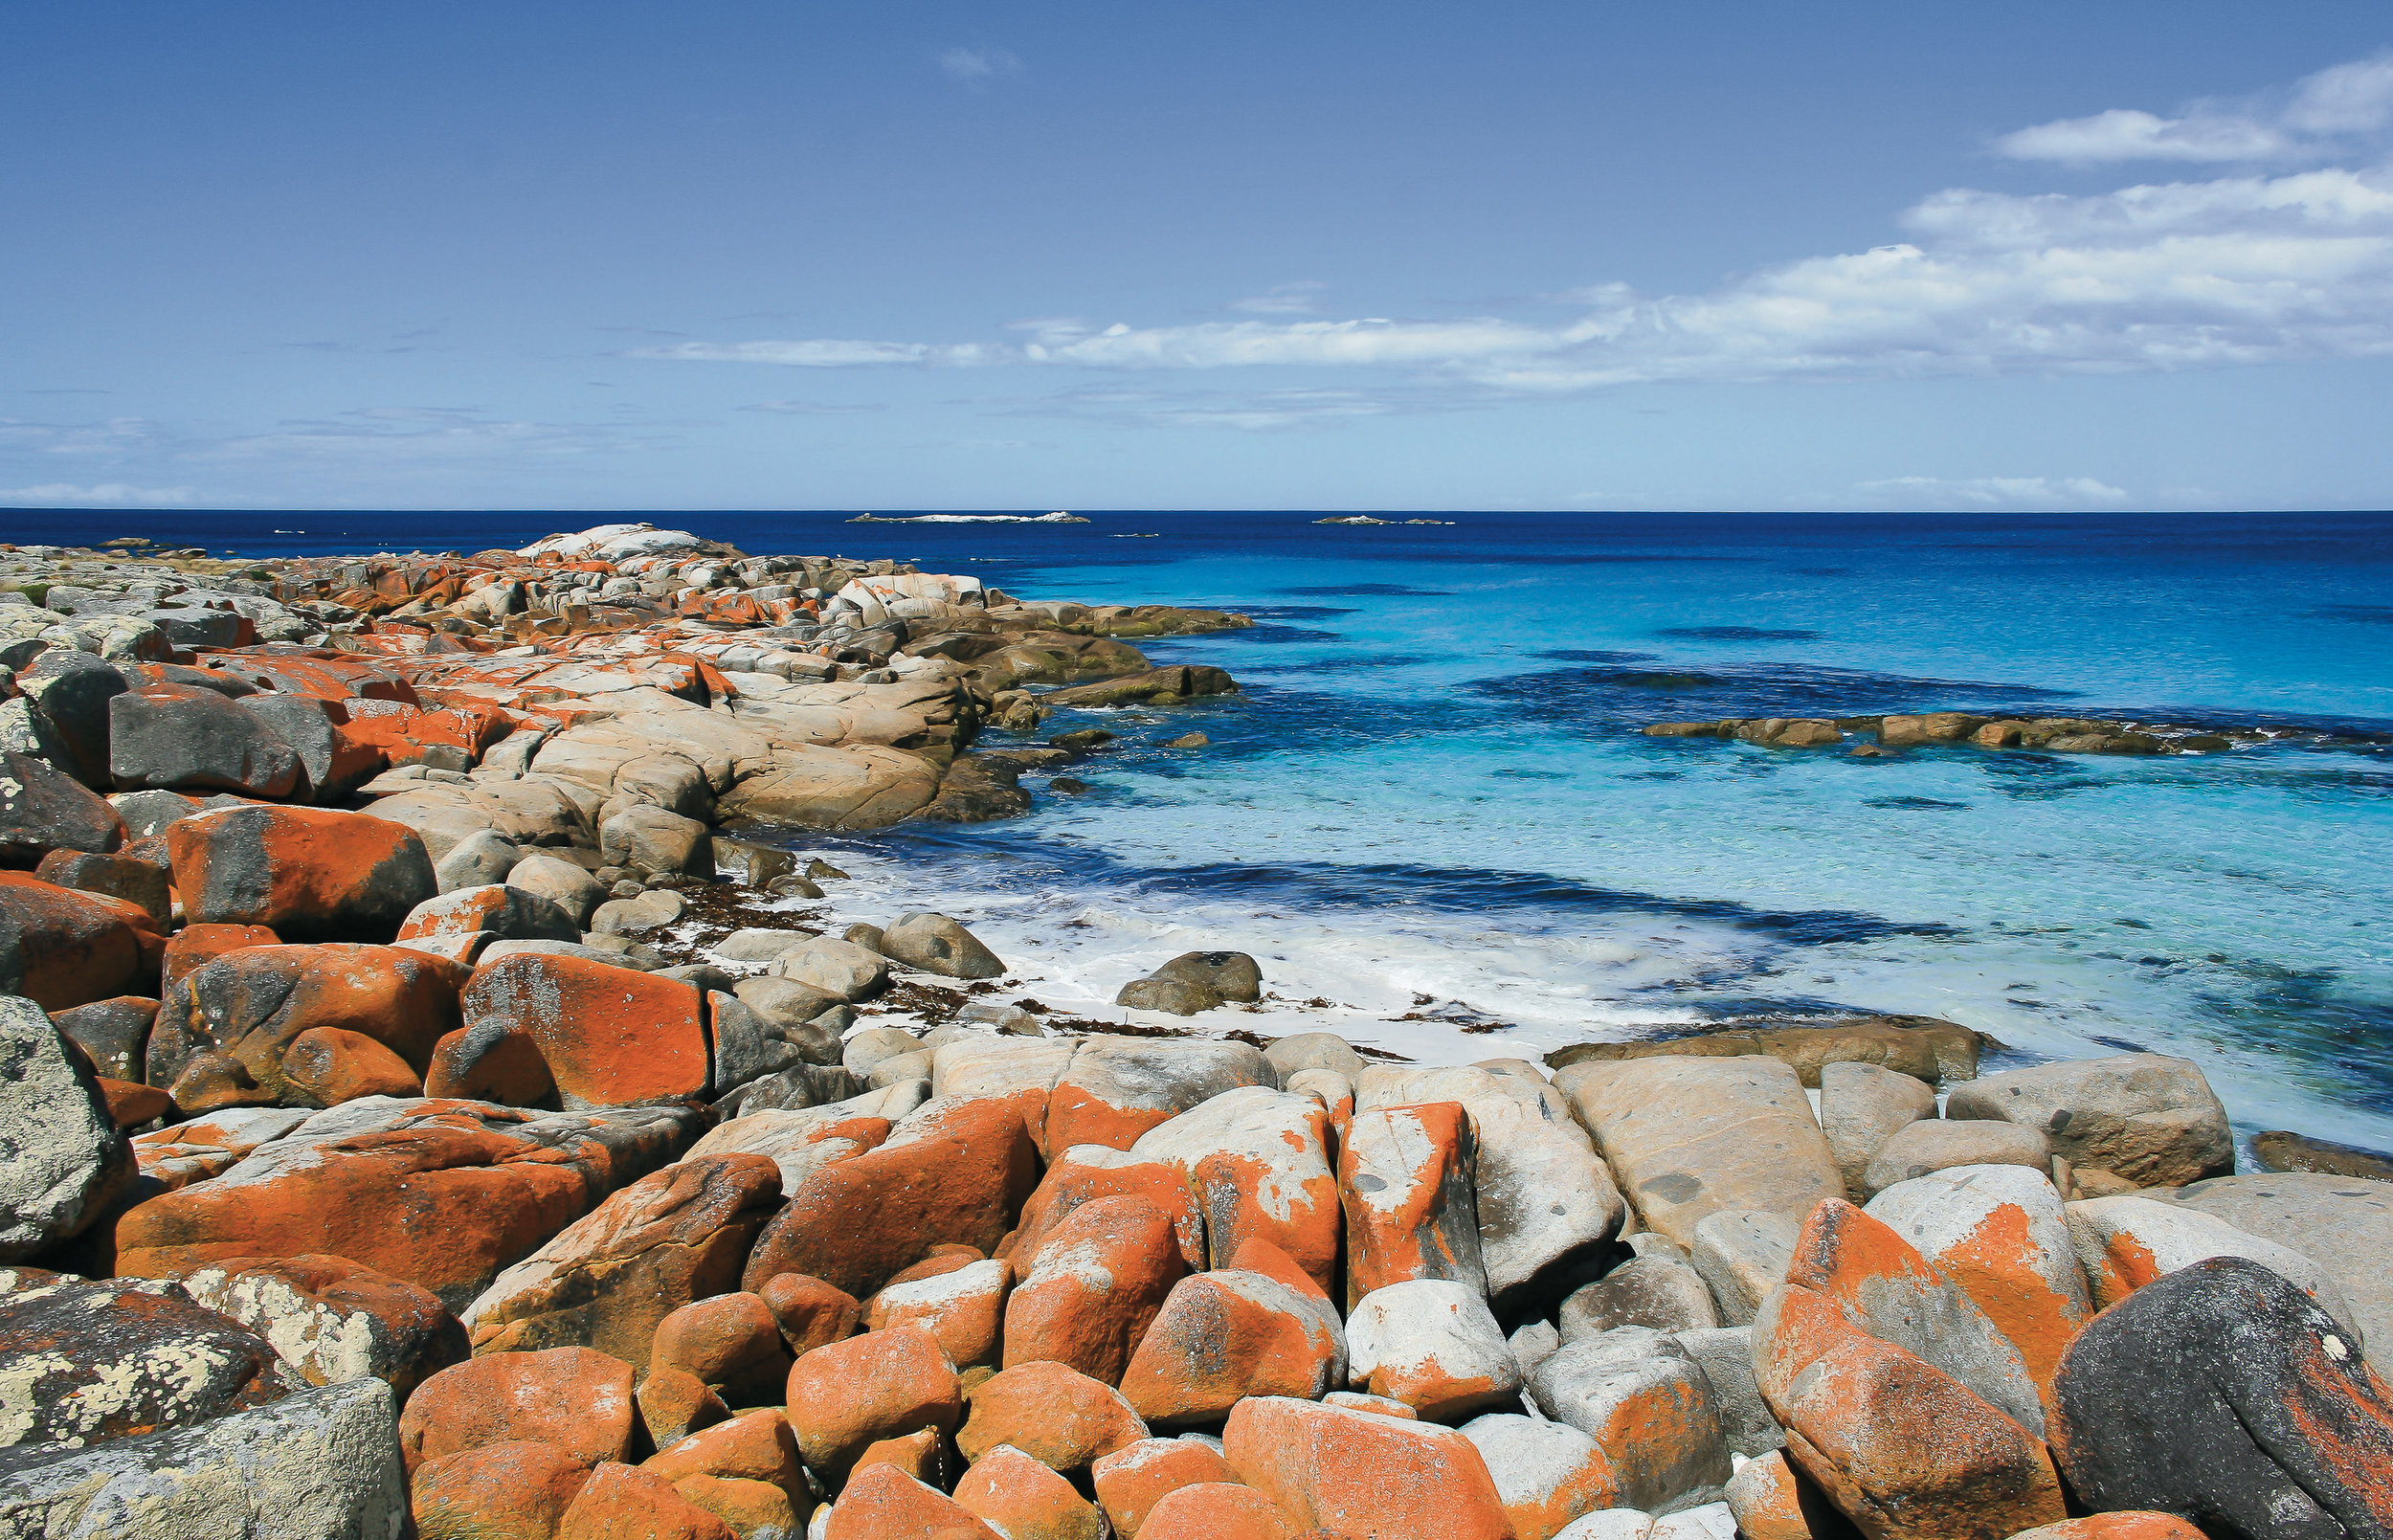 Binalong Bay can be found at the southern end of the spectacular Bay of Fires.